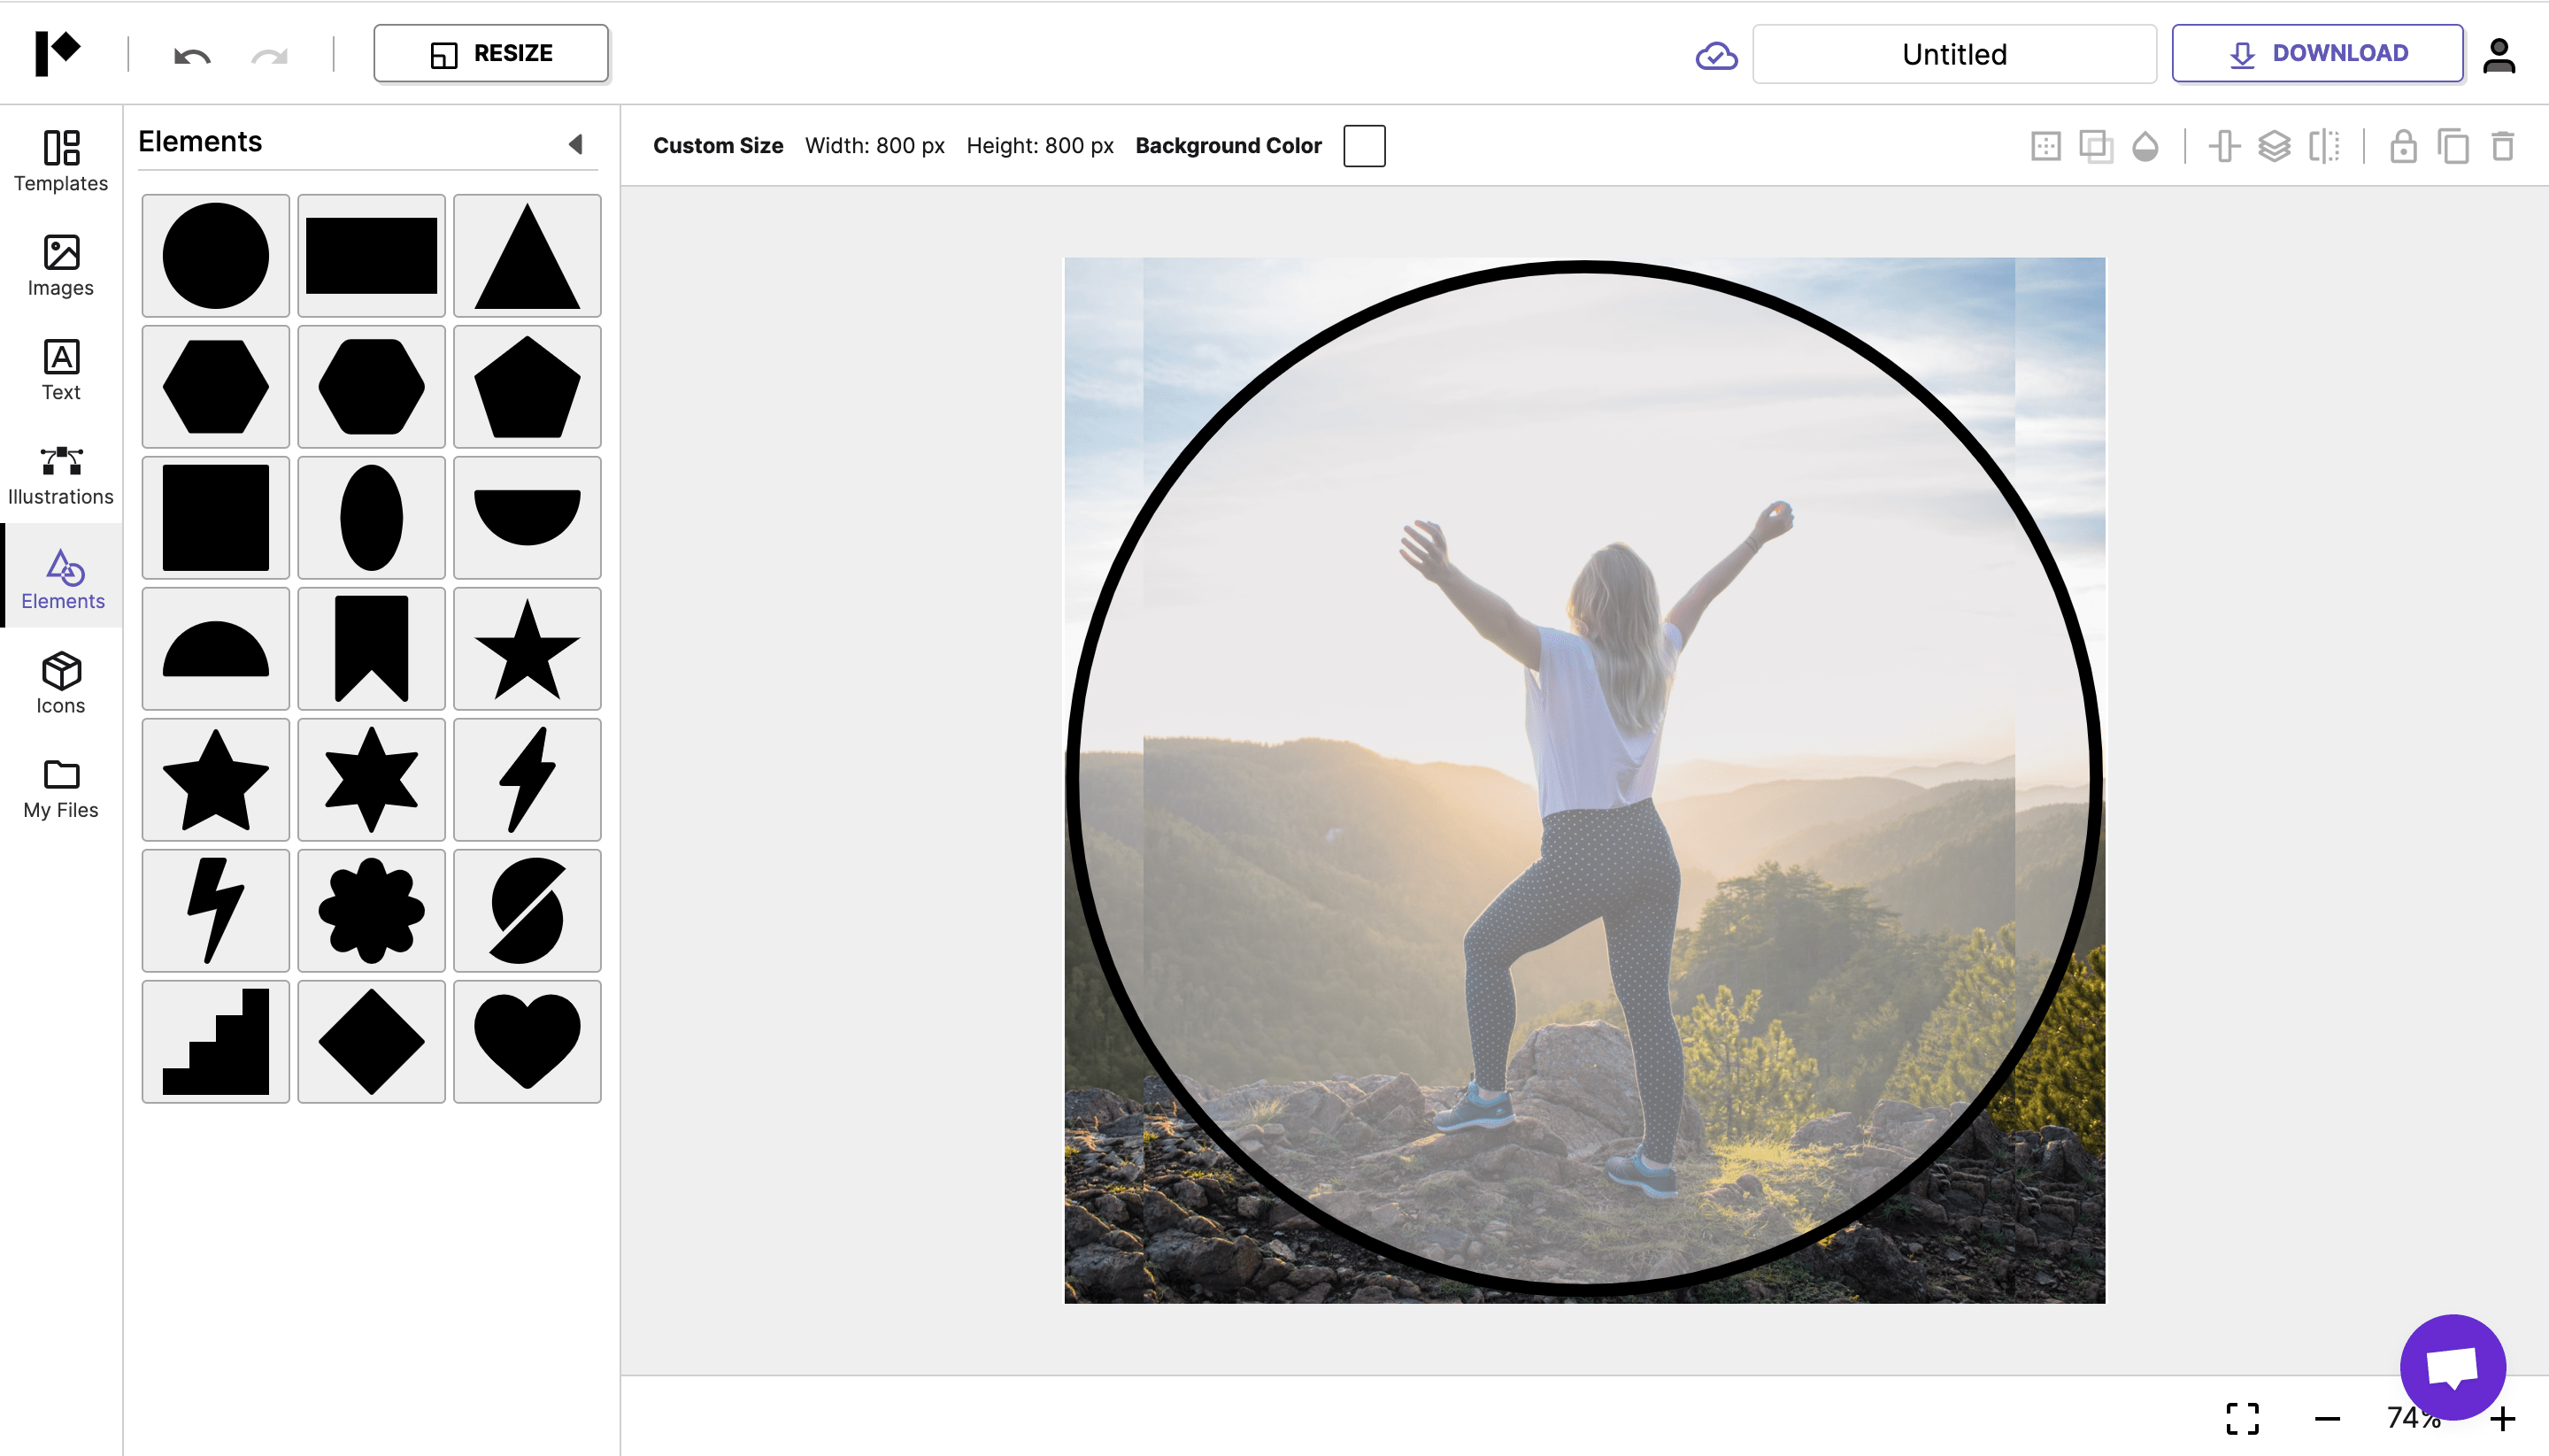 Place the circle to know how the end result will look